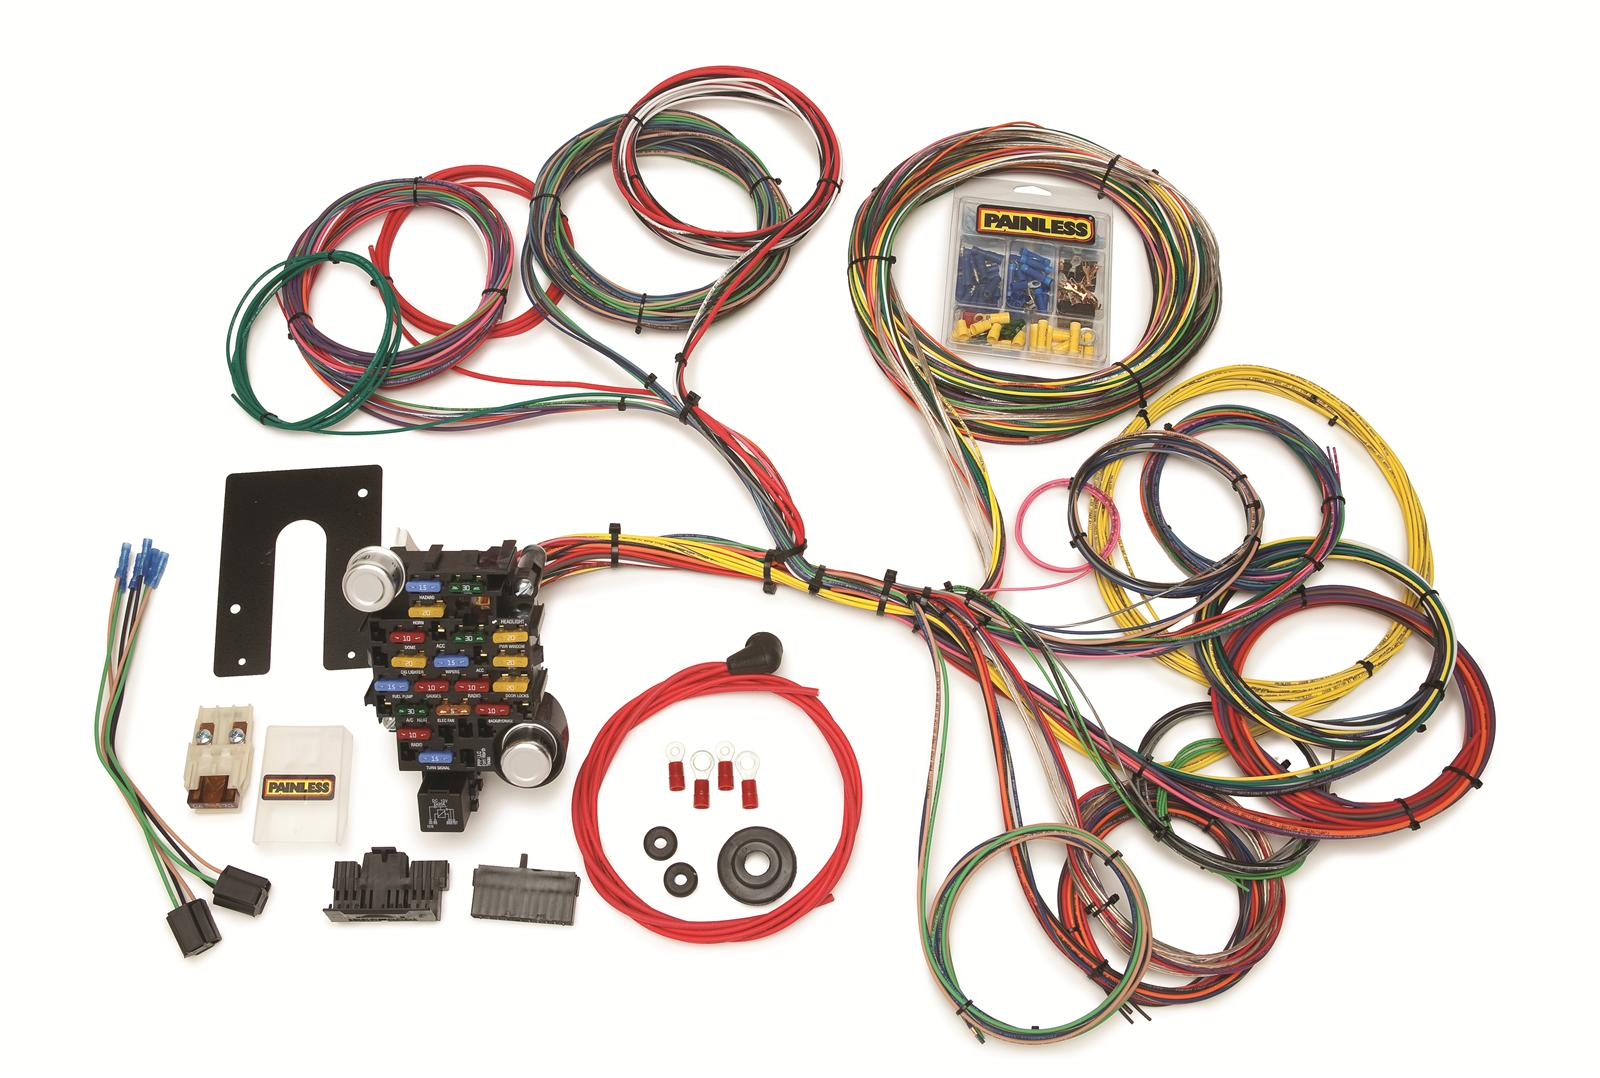 painless performance 28-circuit universal gm truck harnesses 10204 - free  shipping on orders over $99 at summit racing